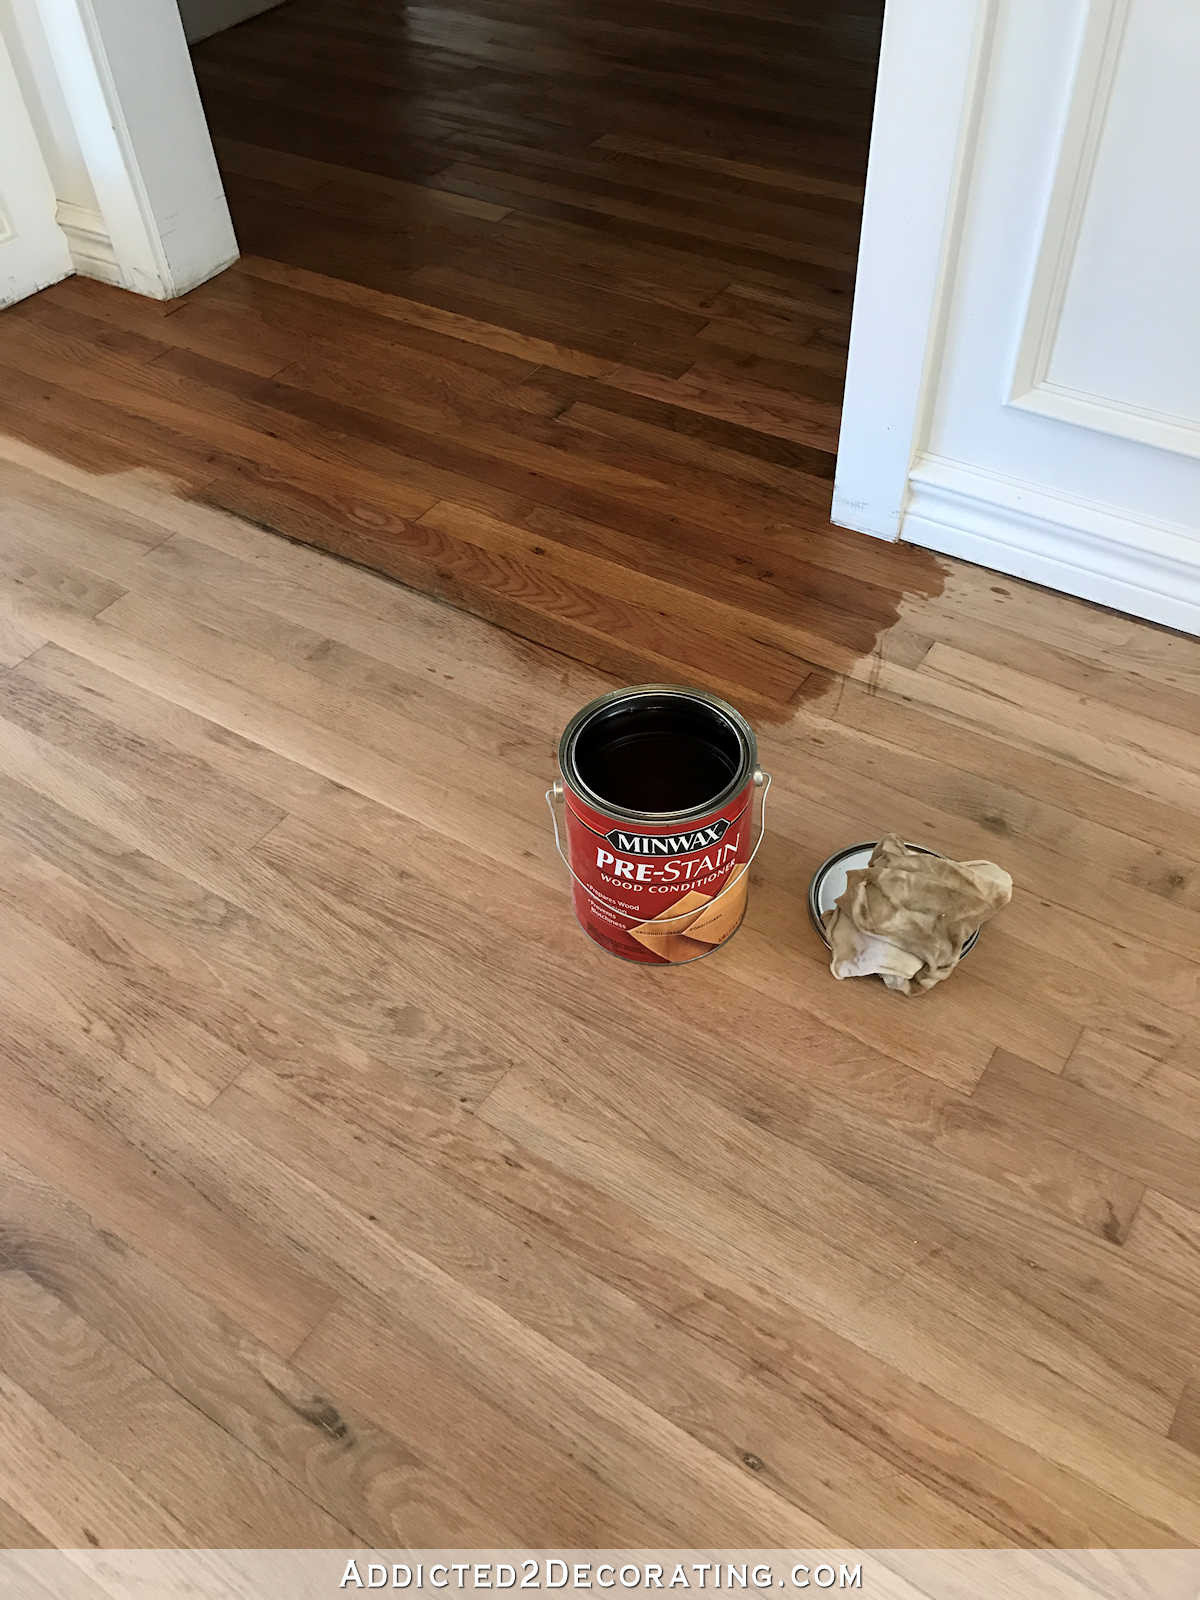 Can You Have Two Different Types Of Hardwood Floors Of Adventures In Staining My Red Oak Hardwood Floors Products Process Pertaining to Staining Red Oak Hardwood Floors 1 Conditioning the Wood with Minwax Pre Stain